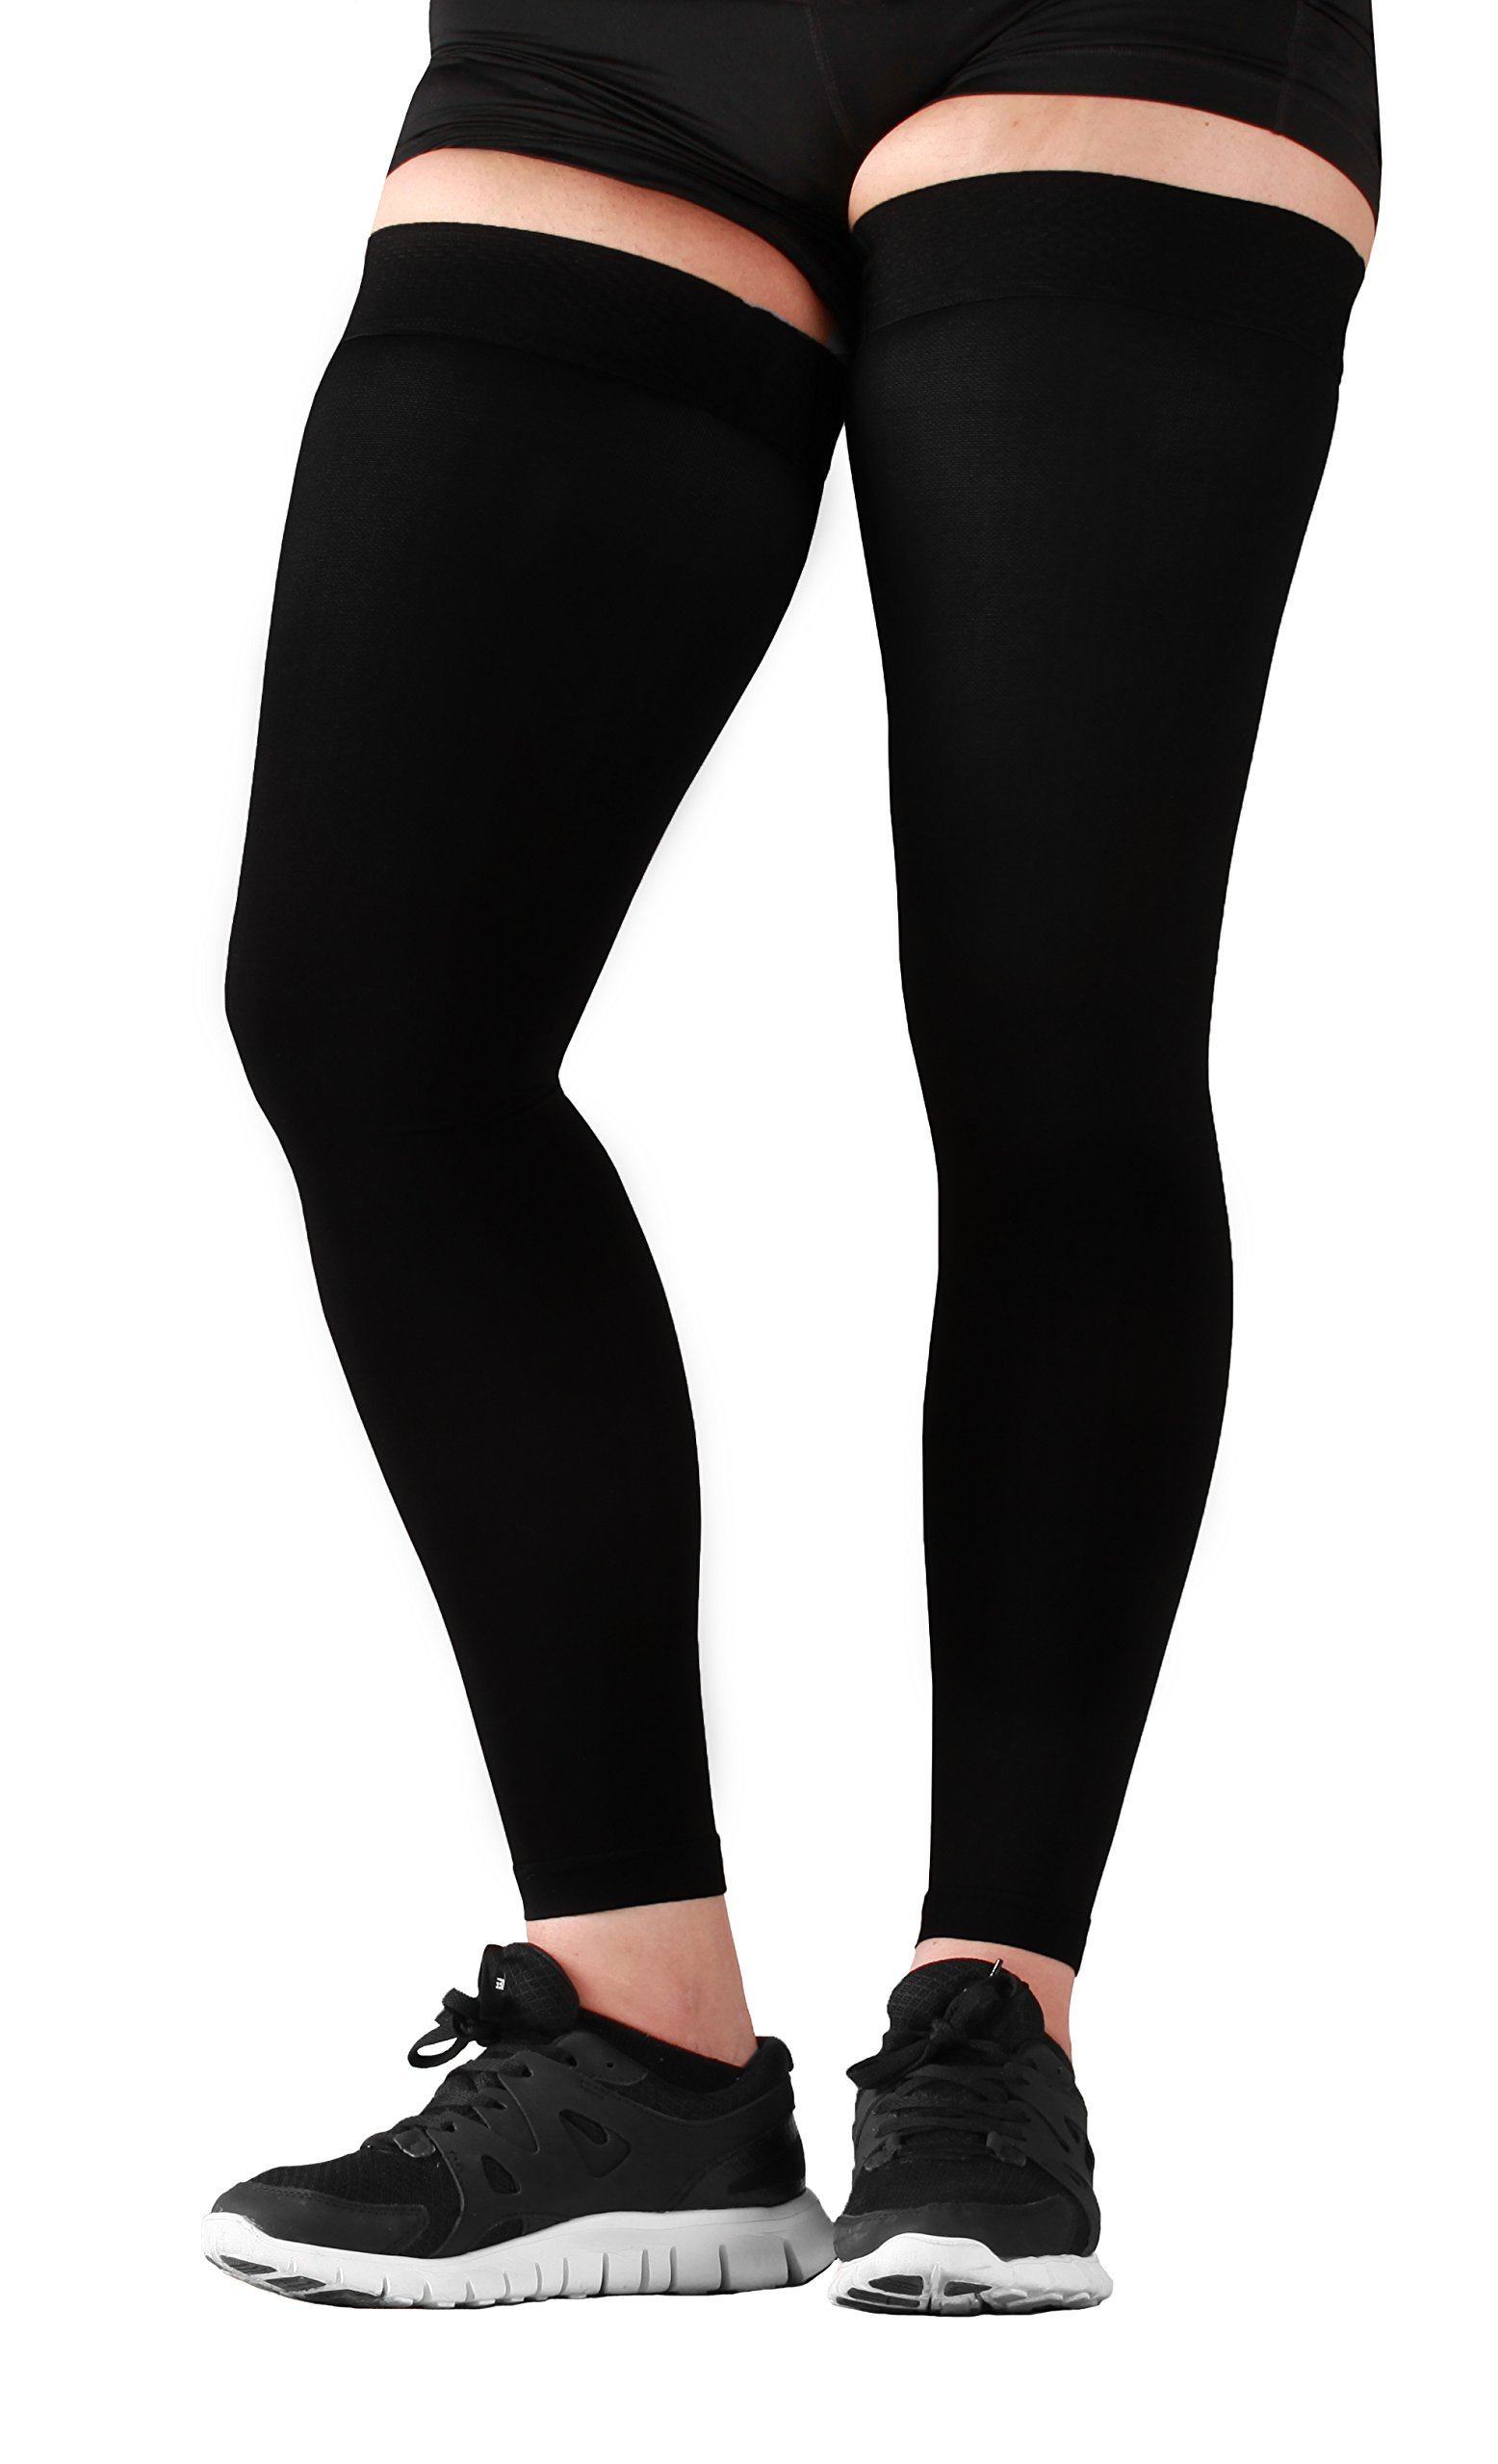 Mojo Compression Sports Recovery Thigh Sleeve - Graduated Compression Stockings Treat Hamstring and Quad Injuries - Hamstring Compression Sleeve (Medium, Black) by Mojo Compression socks